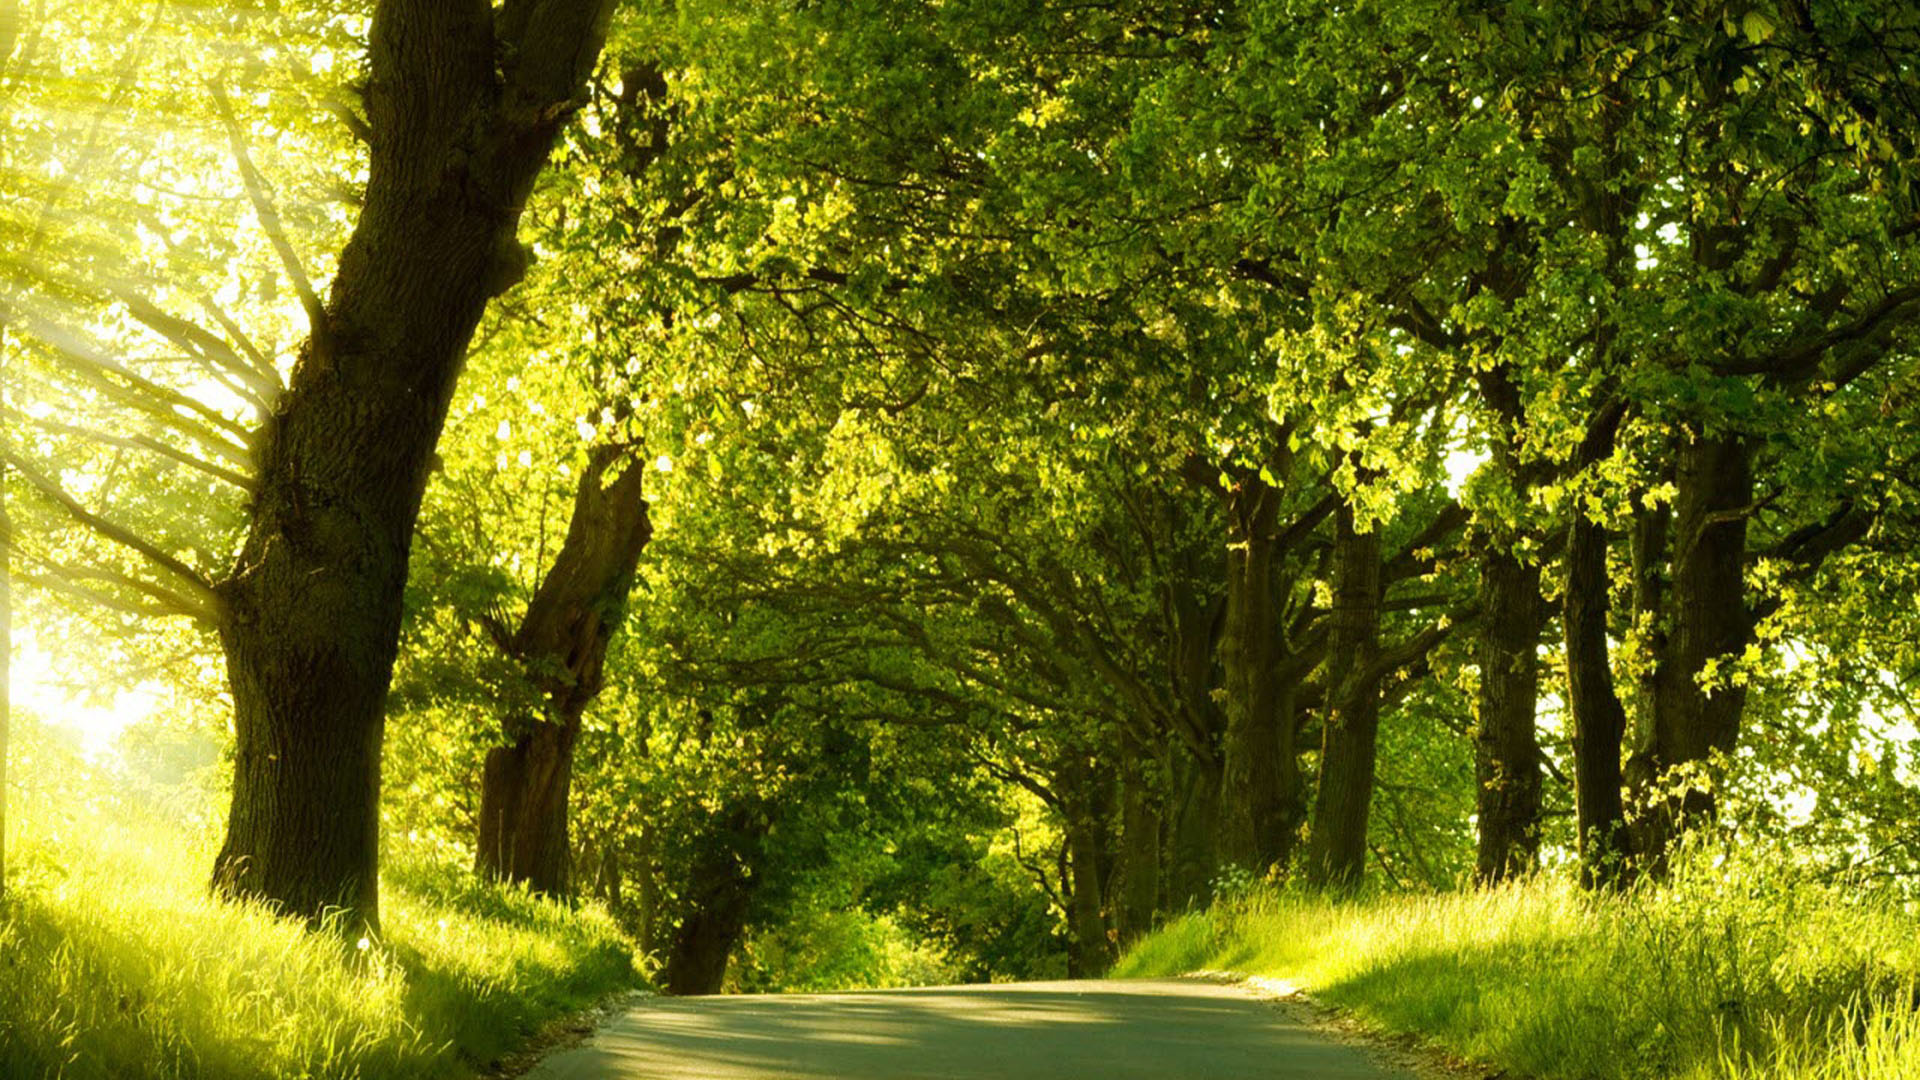 Green Nature Wallpapers HD Pictures | One HD Wallpaper ...